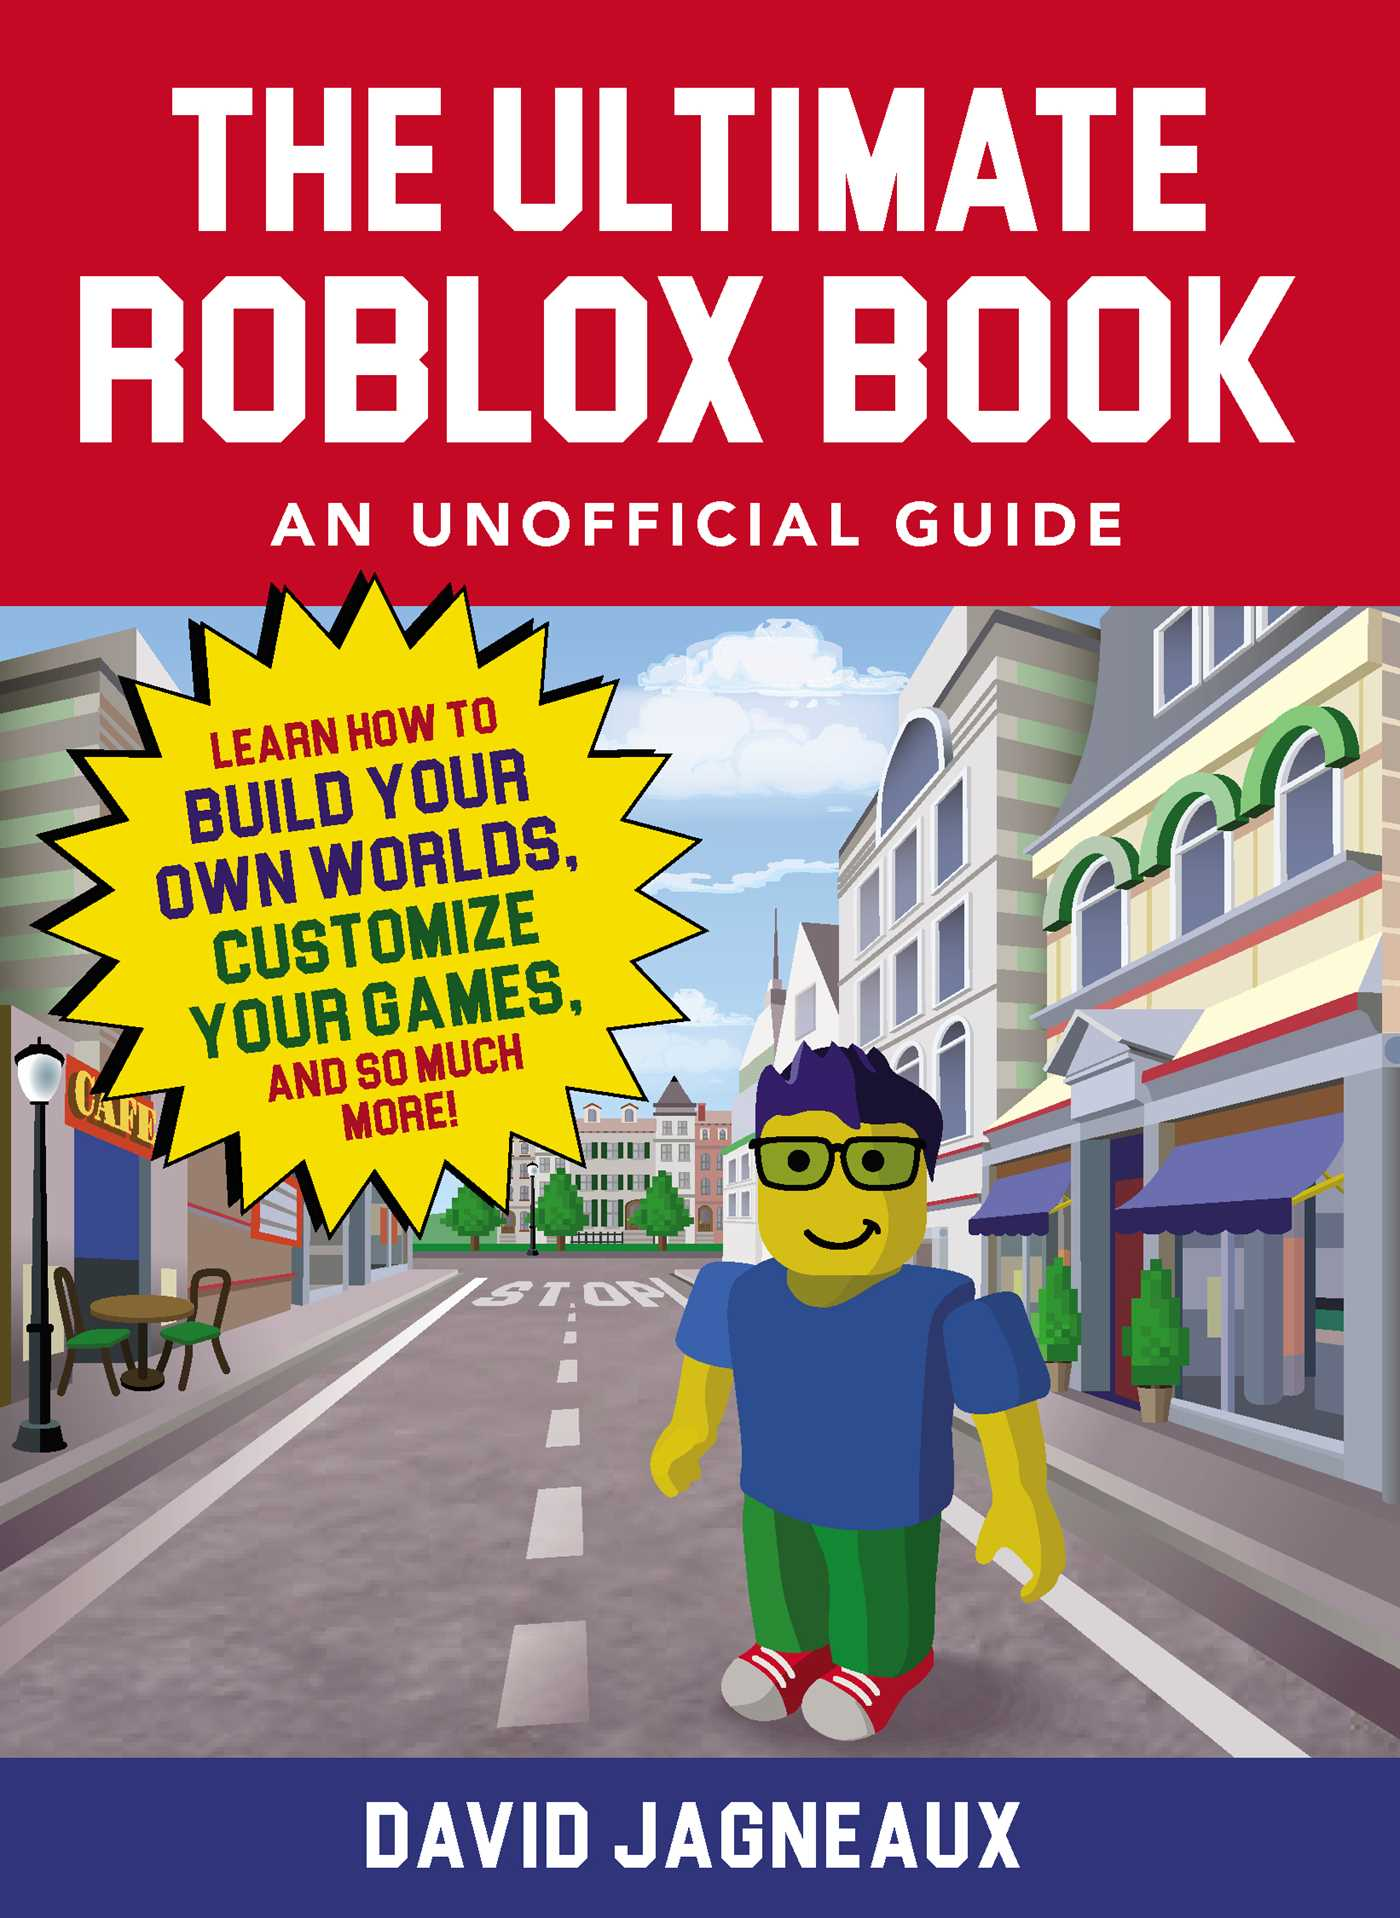 The ultimate roblox book an unofficial guide 9781507205341 hr